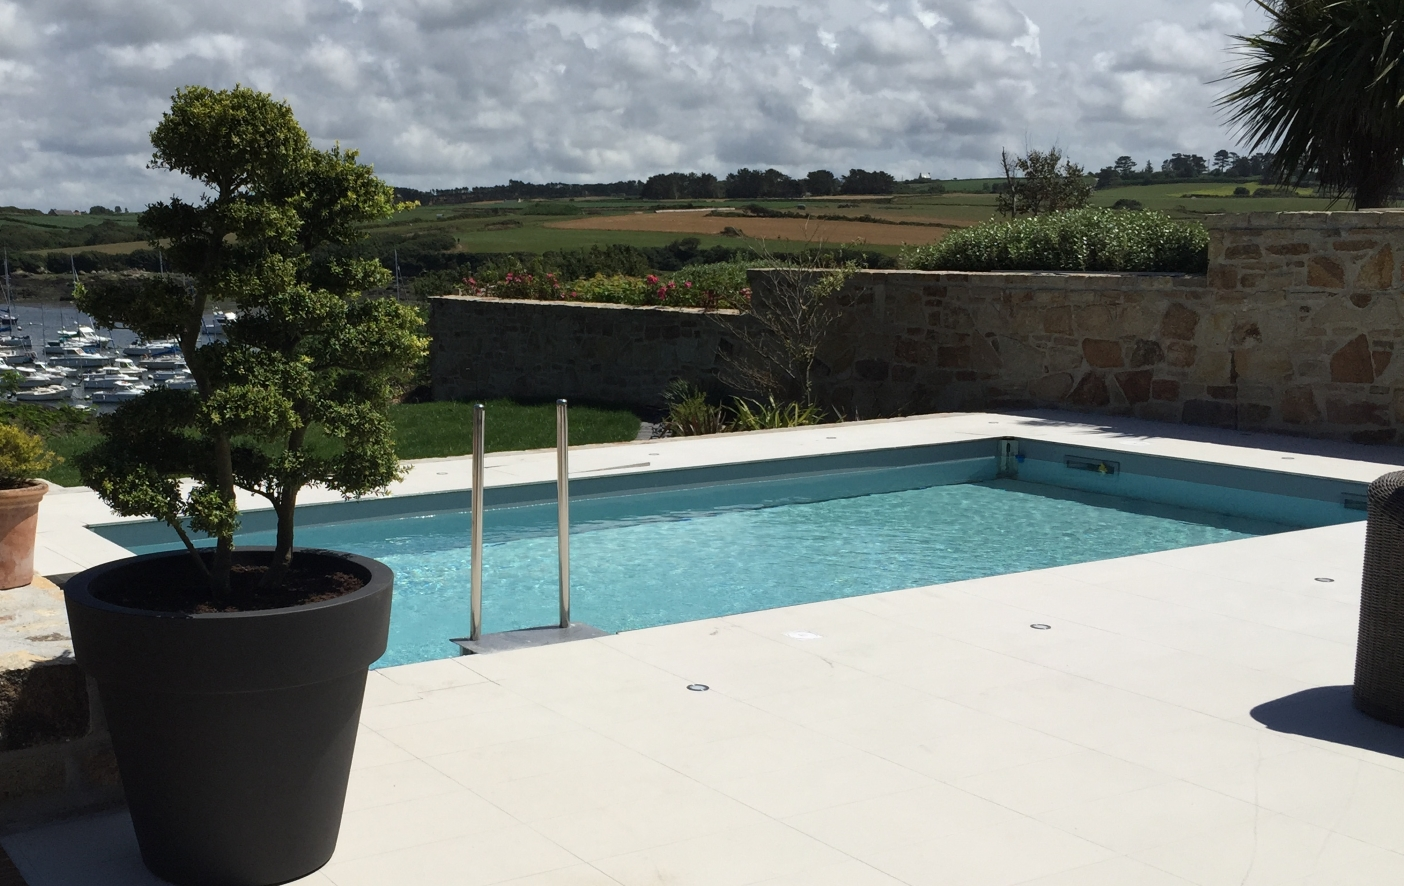 Constructeur piscines ext rieures brest for Piscine mur mobile